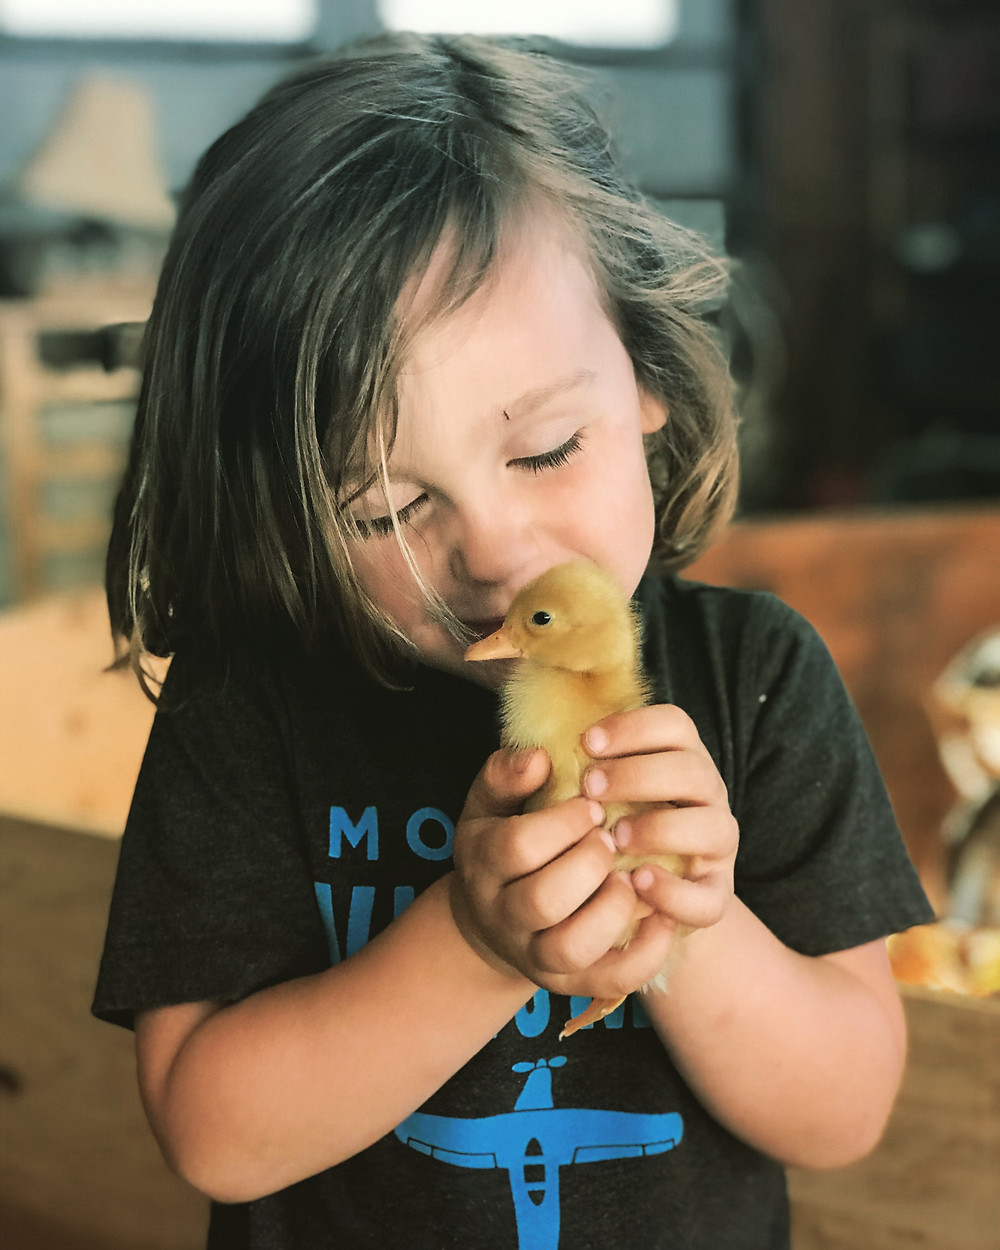 Young boy holding a duckling